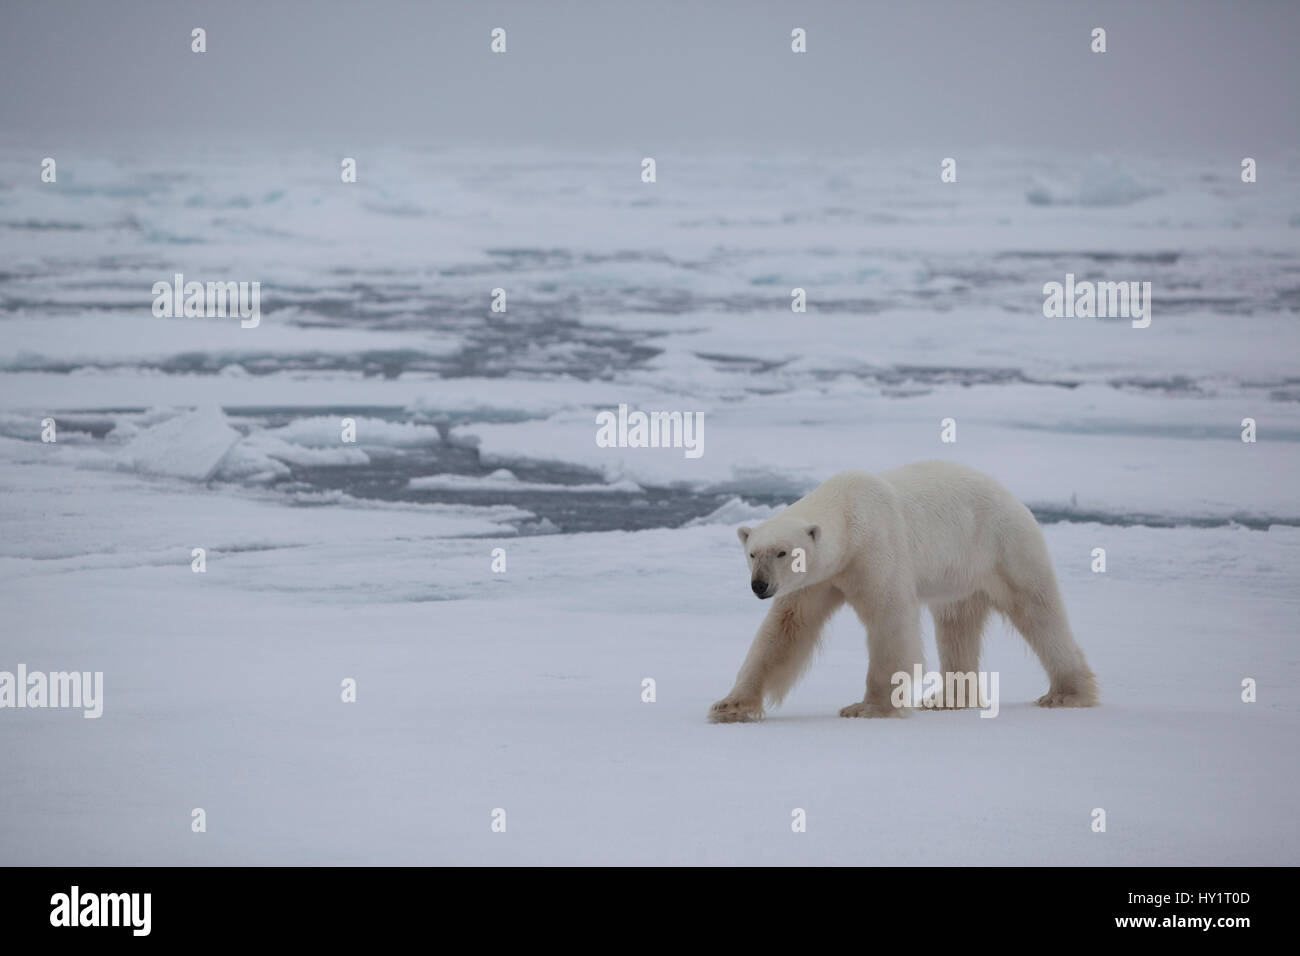 RF- Polar bear (Ursus maritimus) on ice floe, Svalbard, Norway, September 2009. Endangered species. - Stock Image